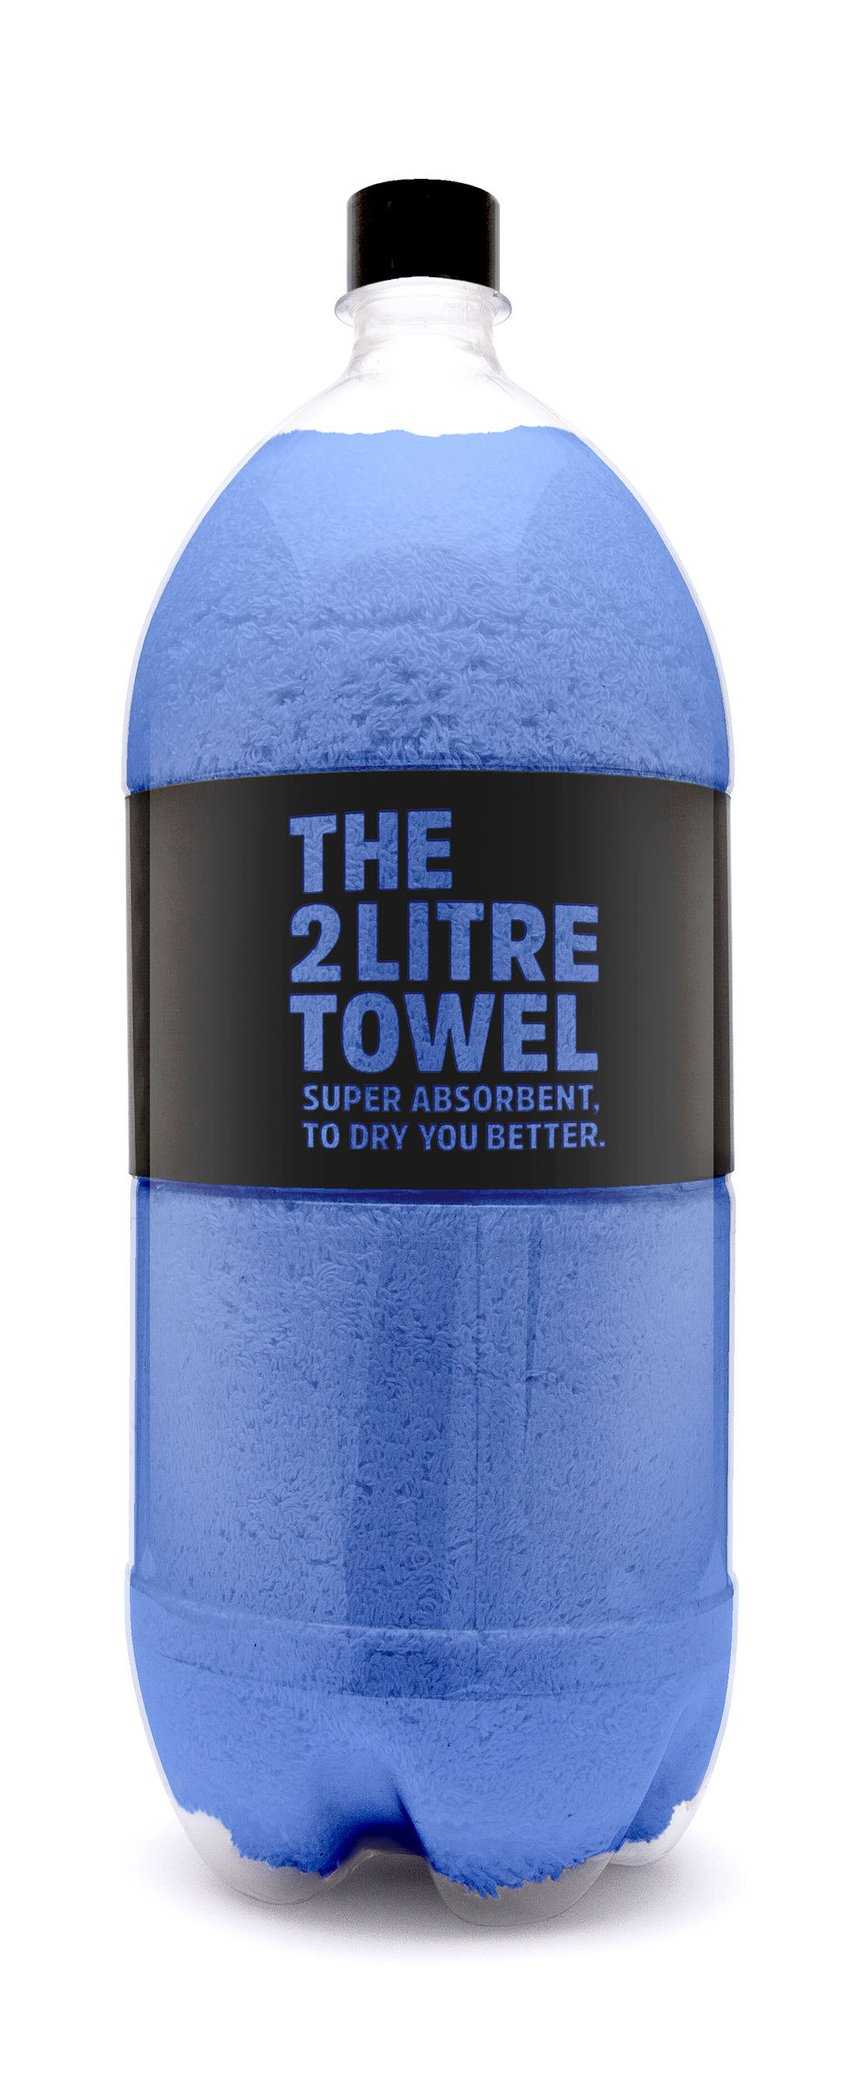 The 2 Litre Towel